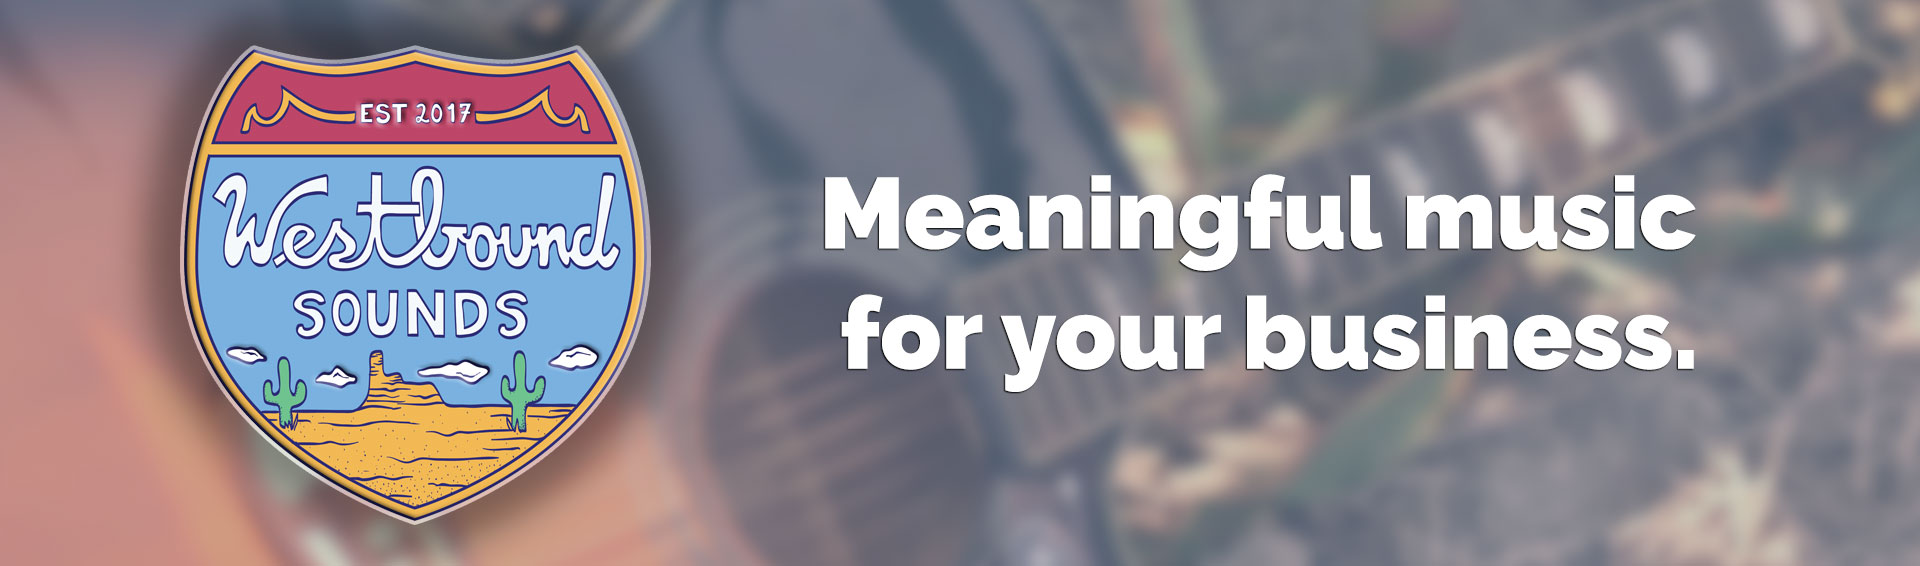 Westbound Sounds - Meaningful music for your business.